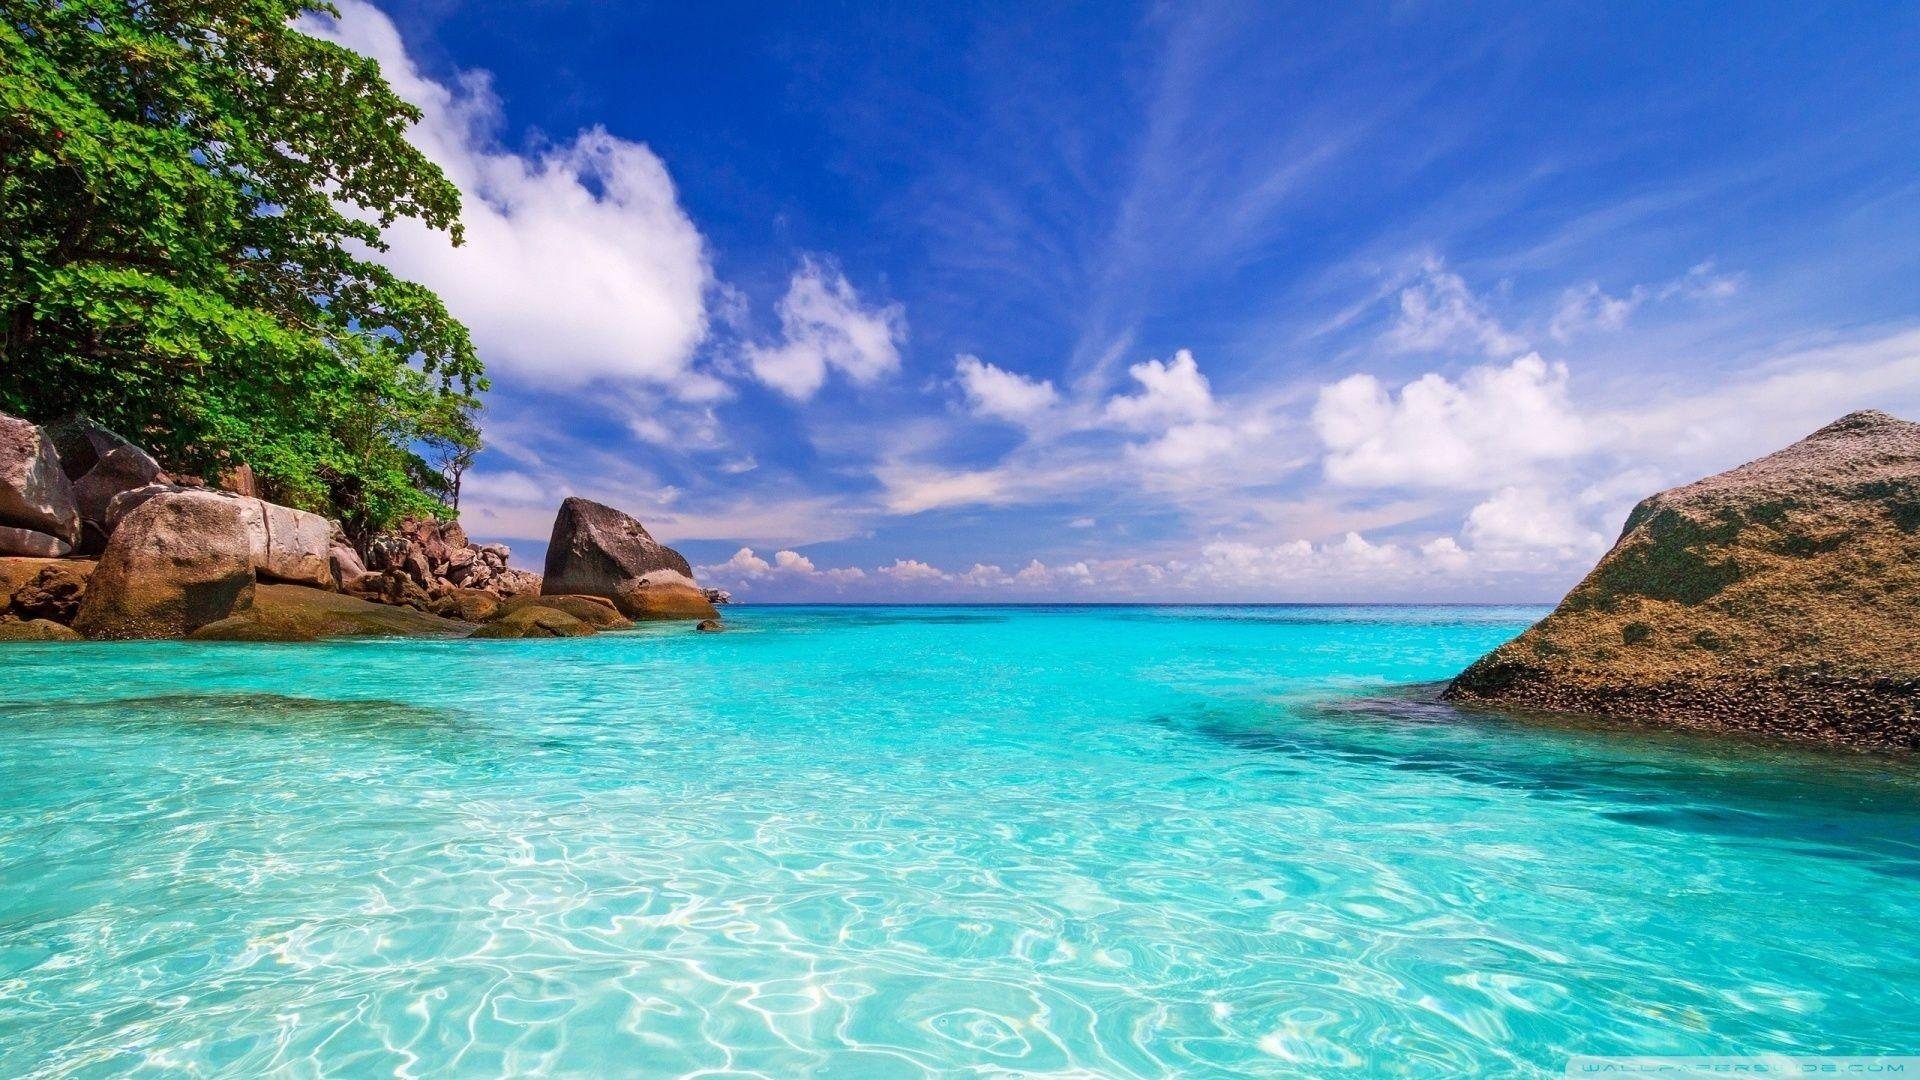 Ocean and Beach Wallpapers   Top Ocean and Beach Backgrounds 1920x1080